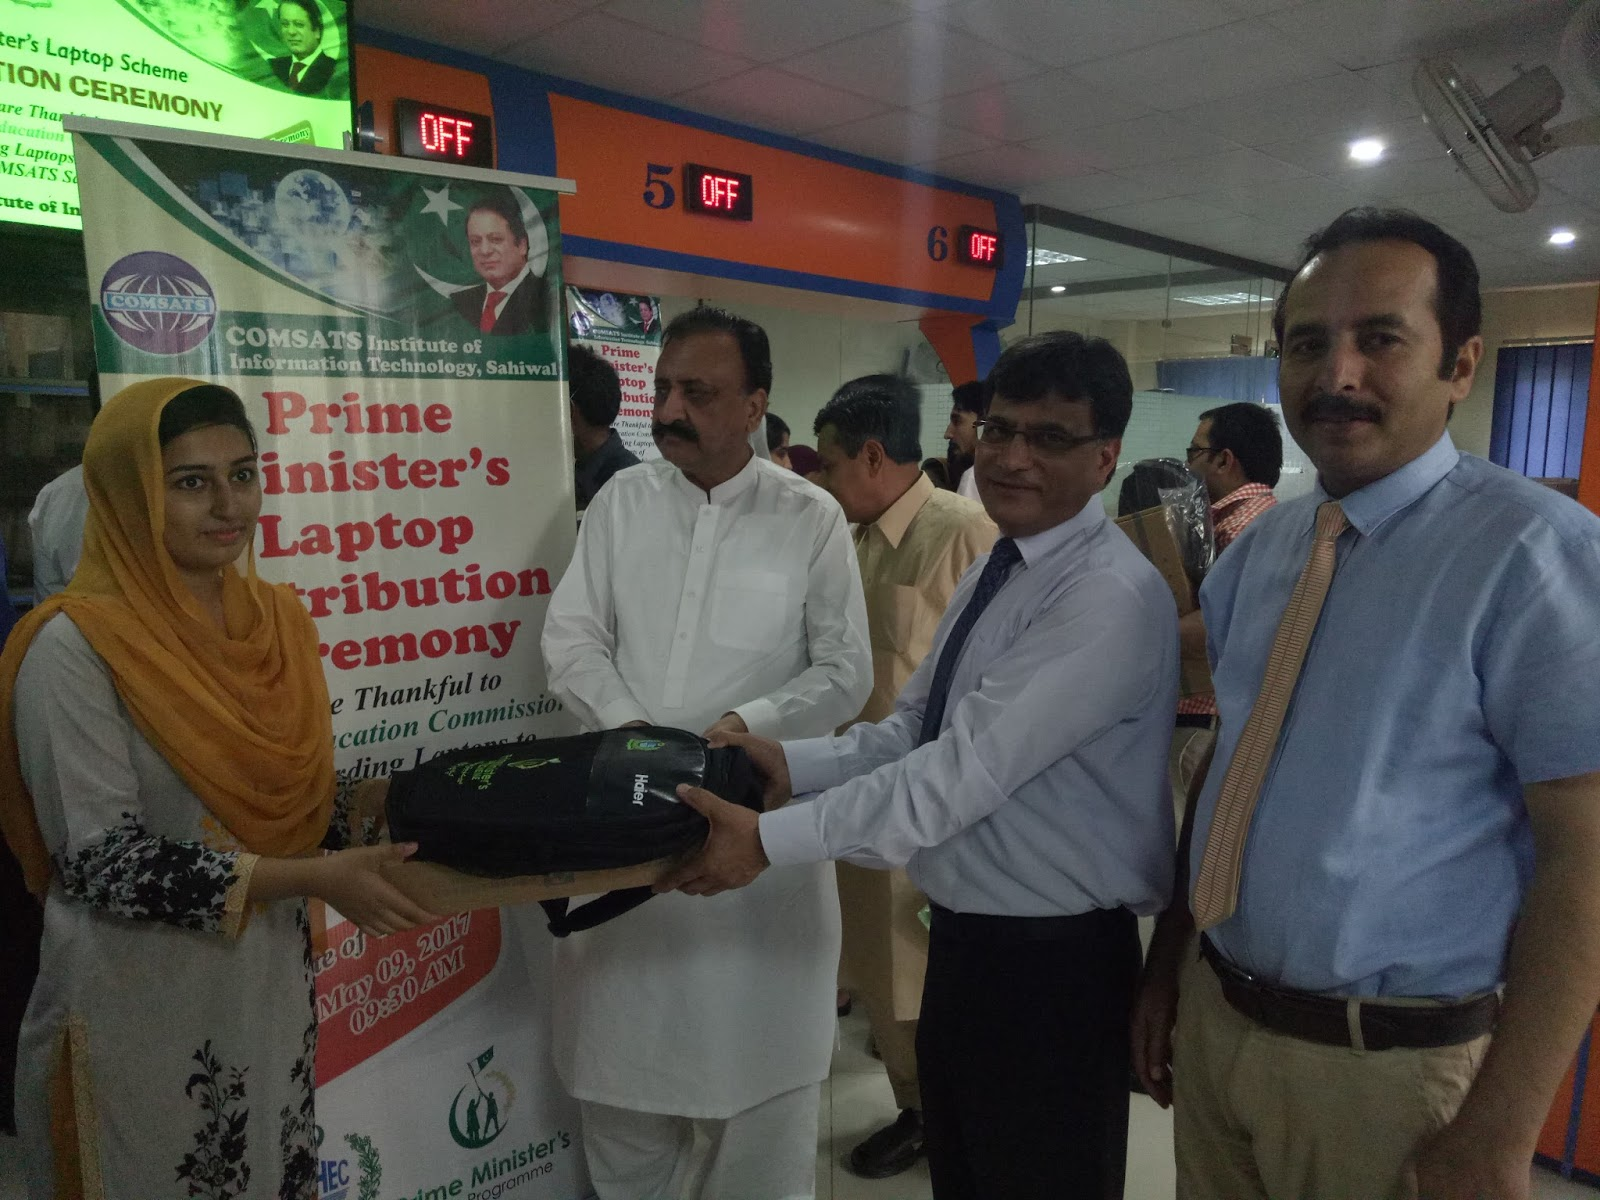 COMSATS Sahiwal Have Been Awarded Laptops - GlobalBussiness